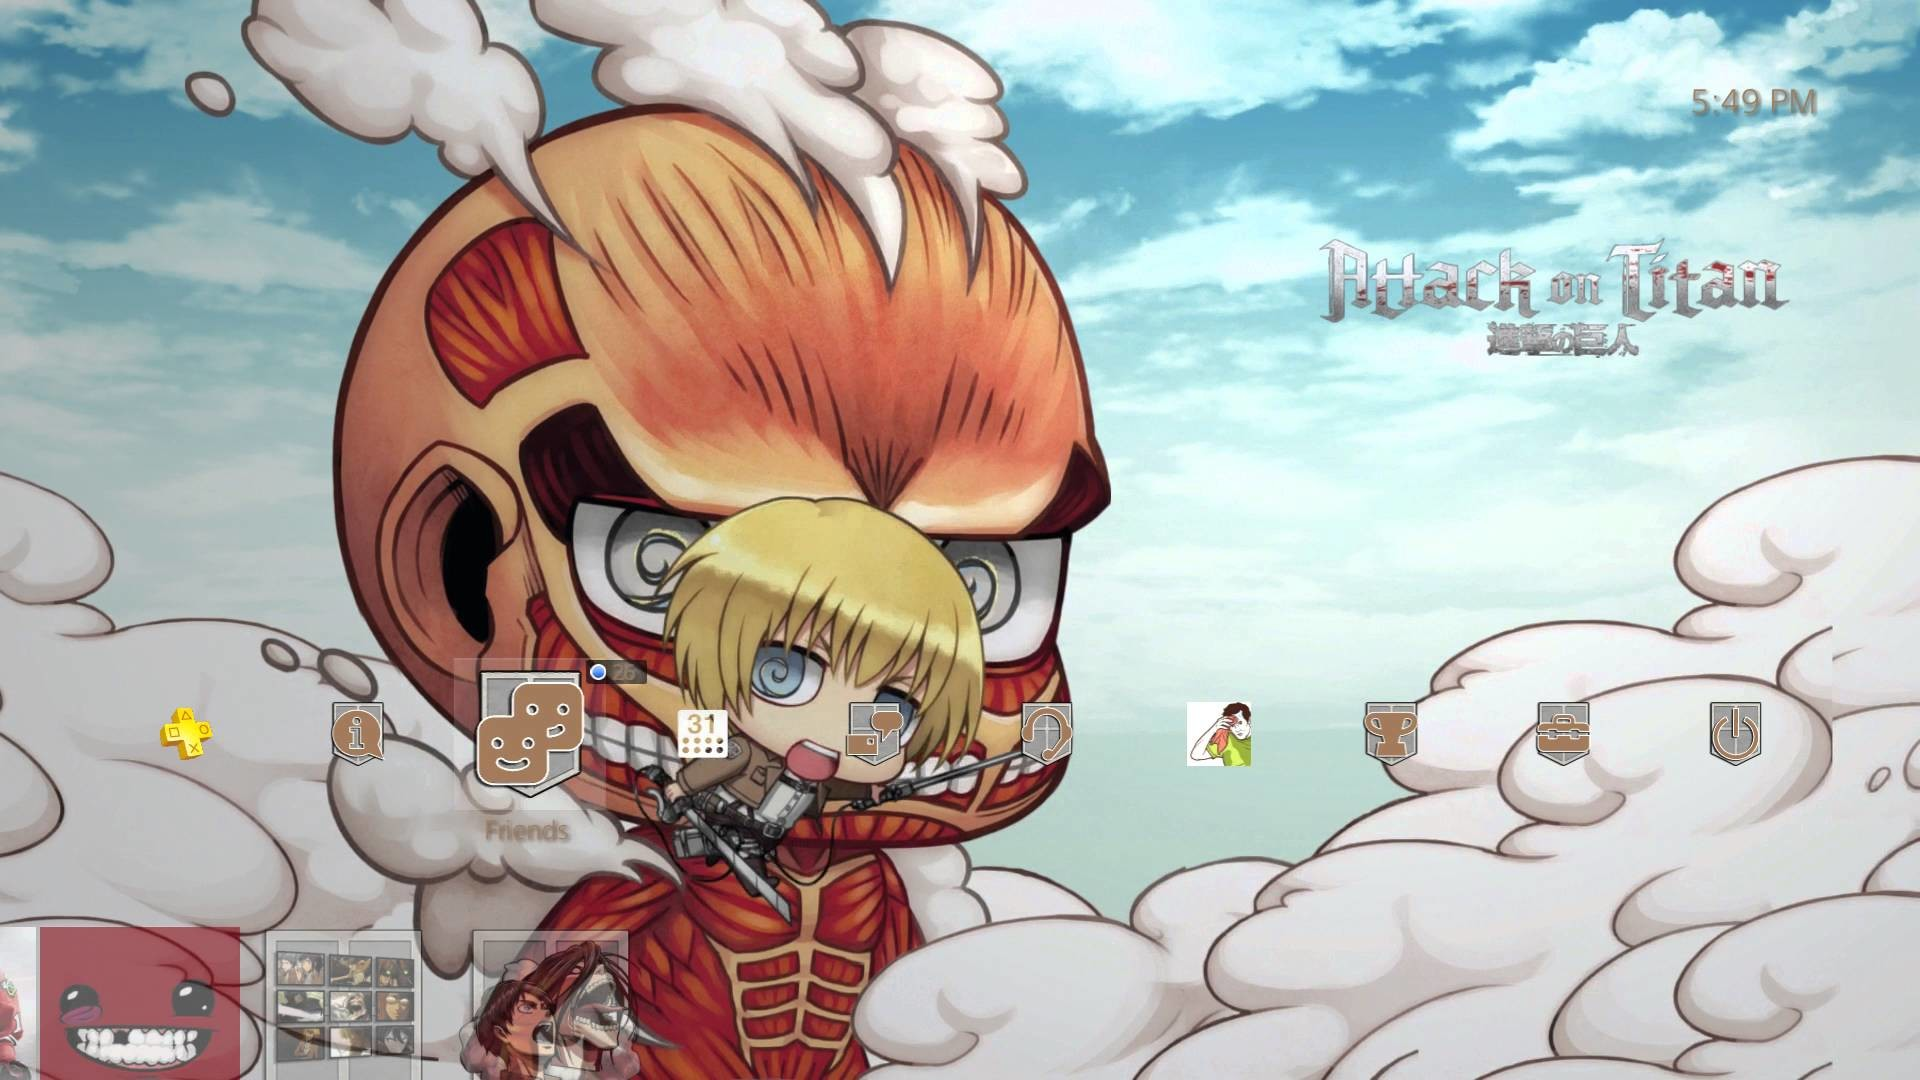 1920x1080 [NA] Attack on Titan Chibi Titan [Audio Fixed] [PS4 Theme]